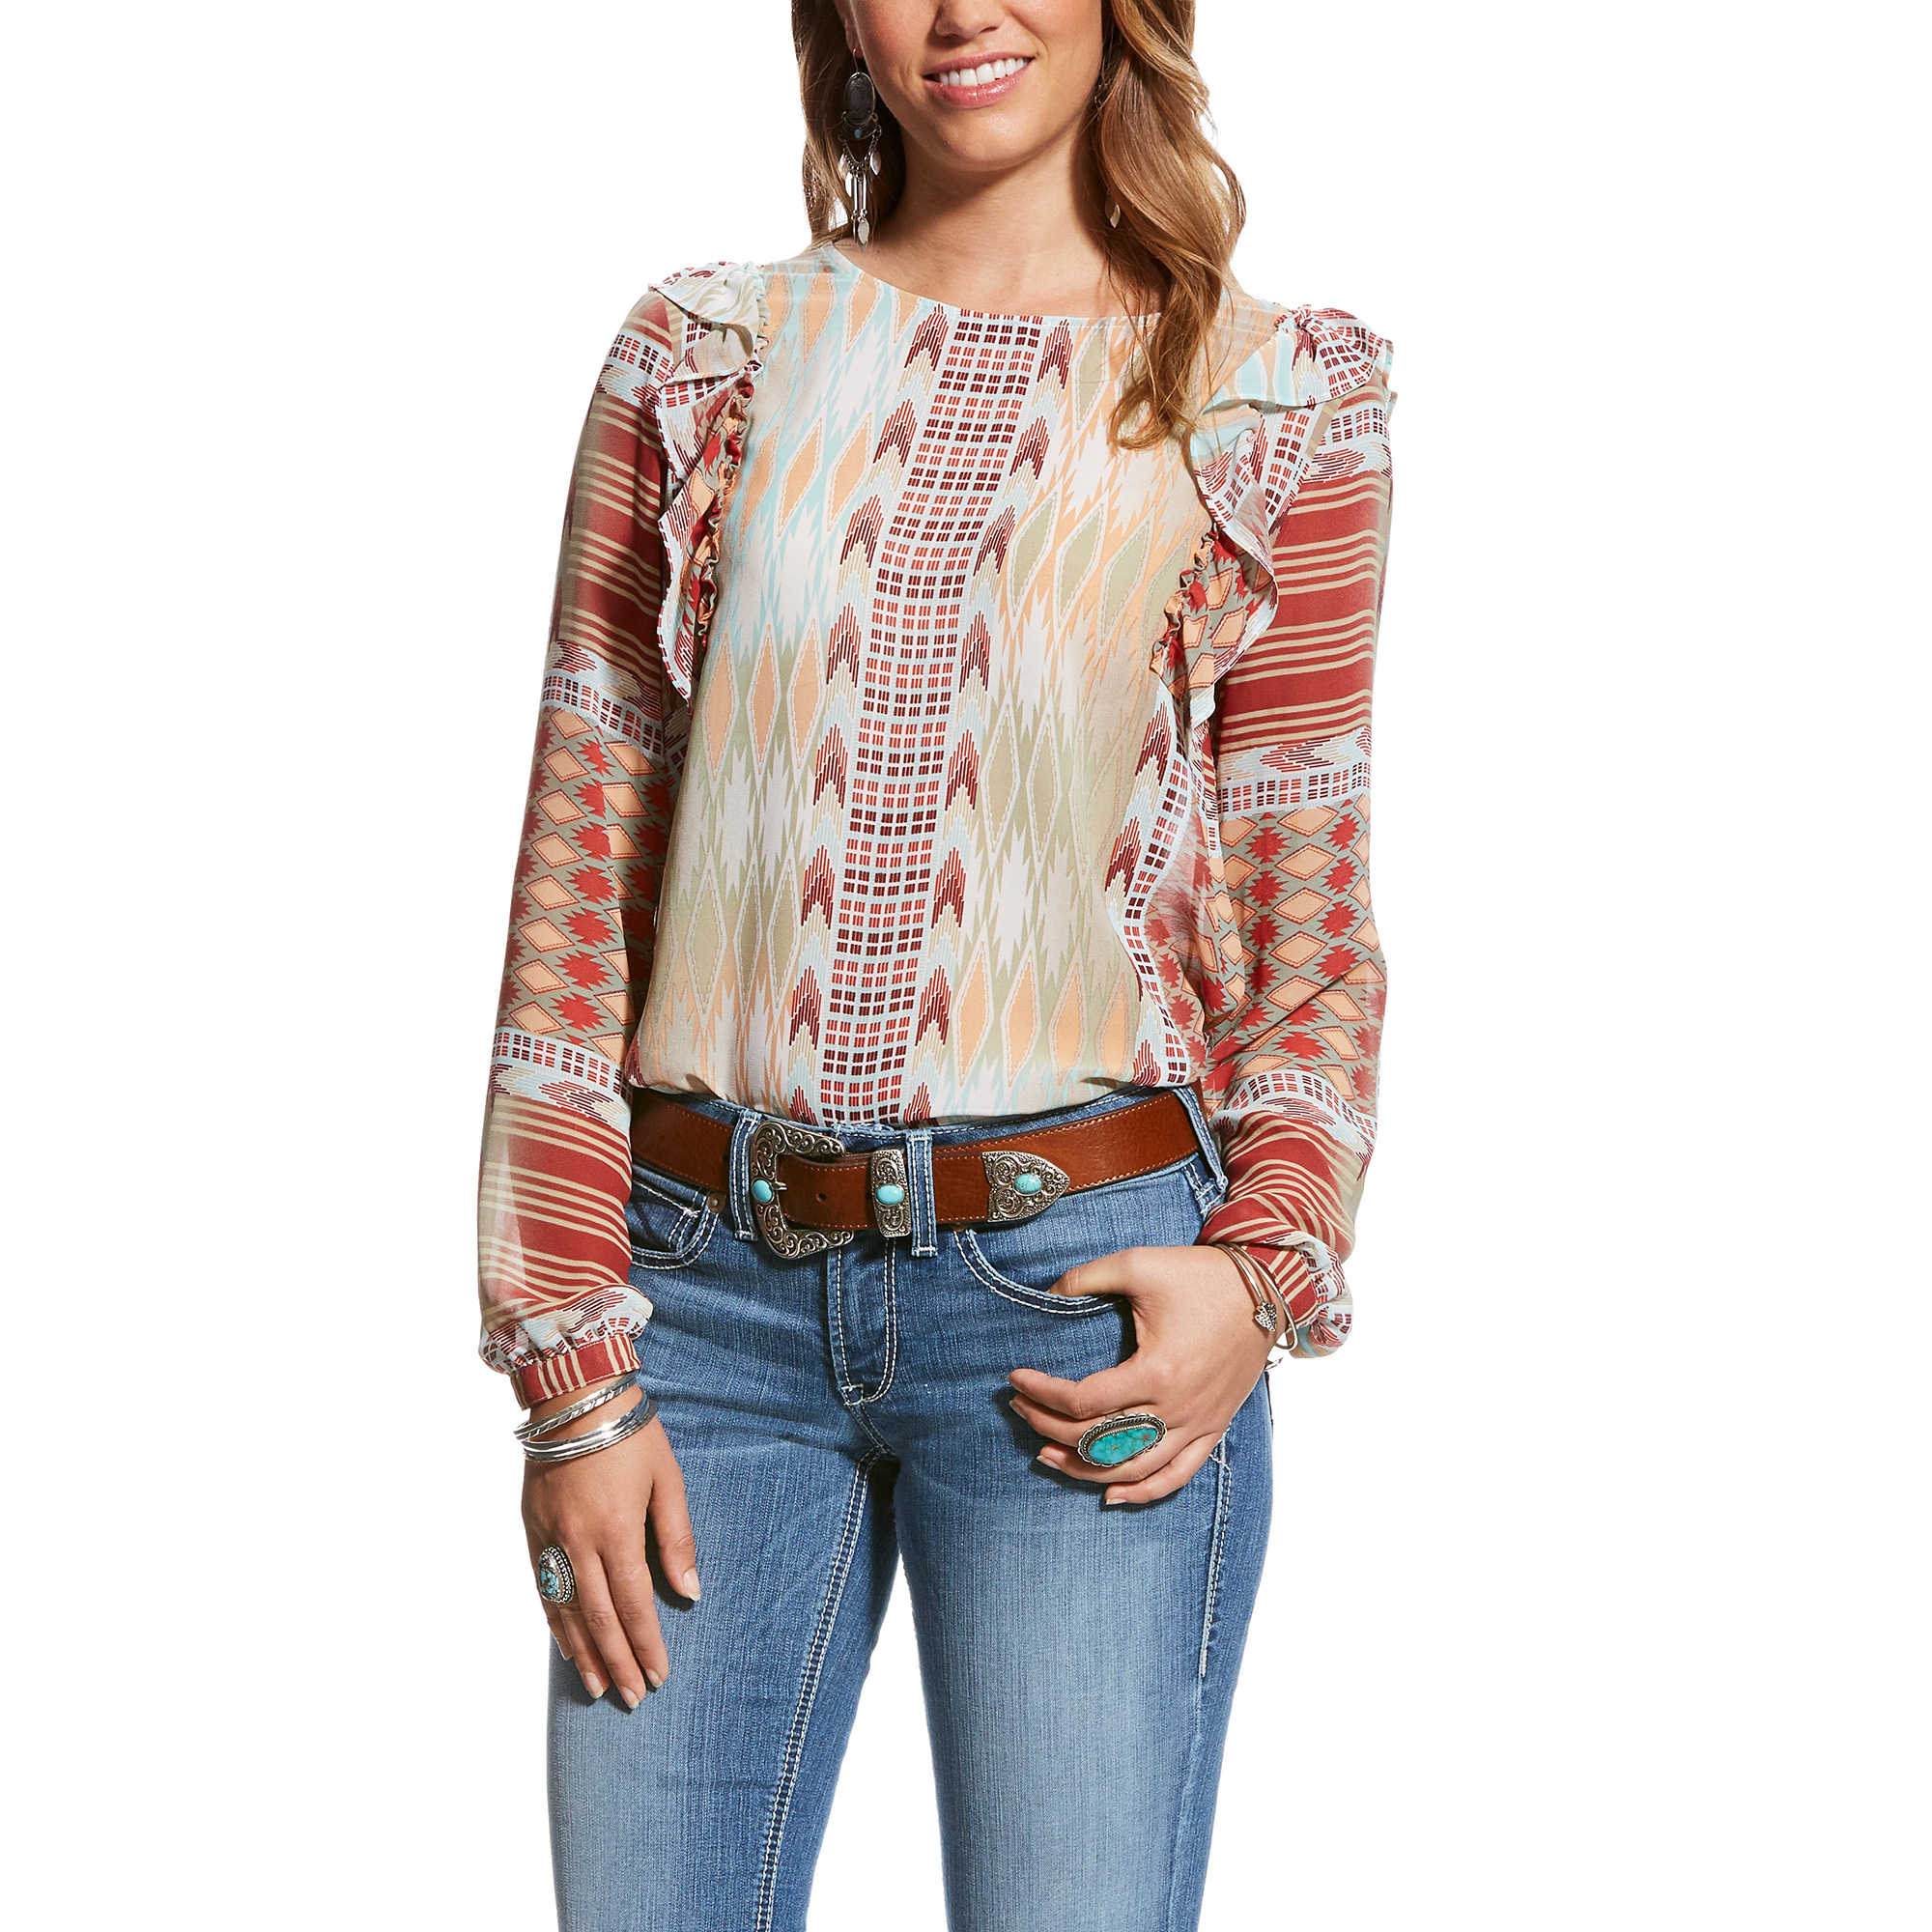 Annabella Blouse from Ariat